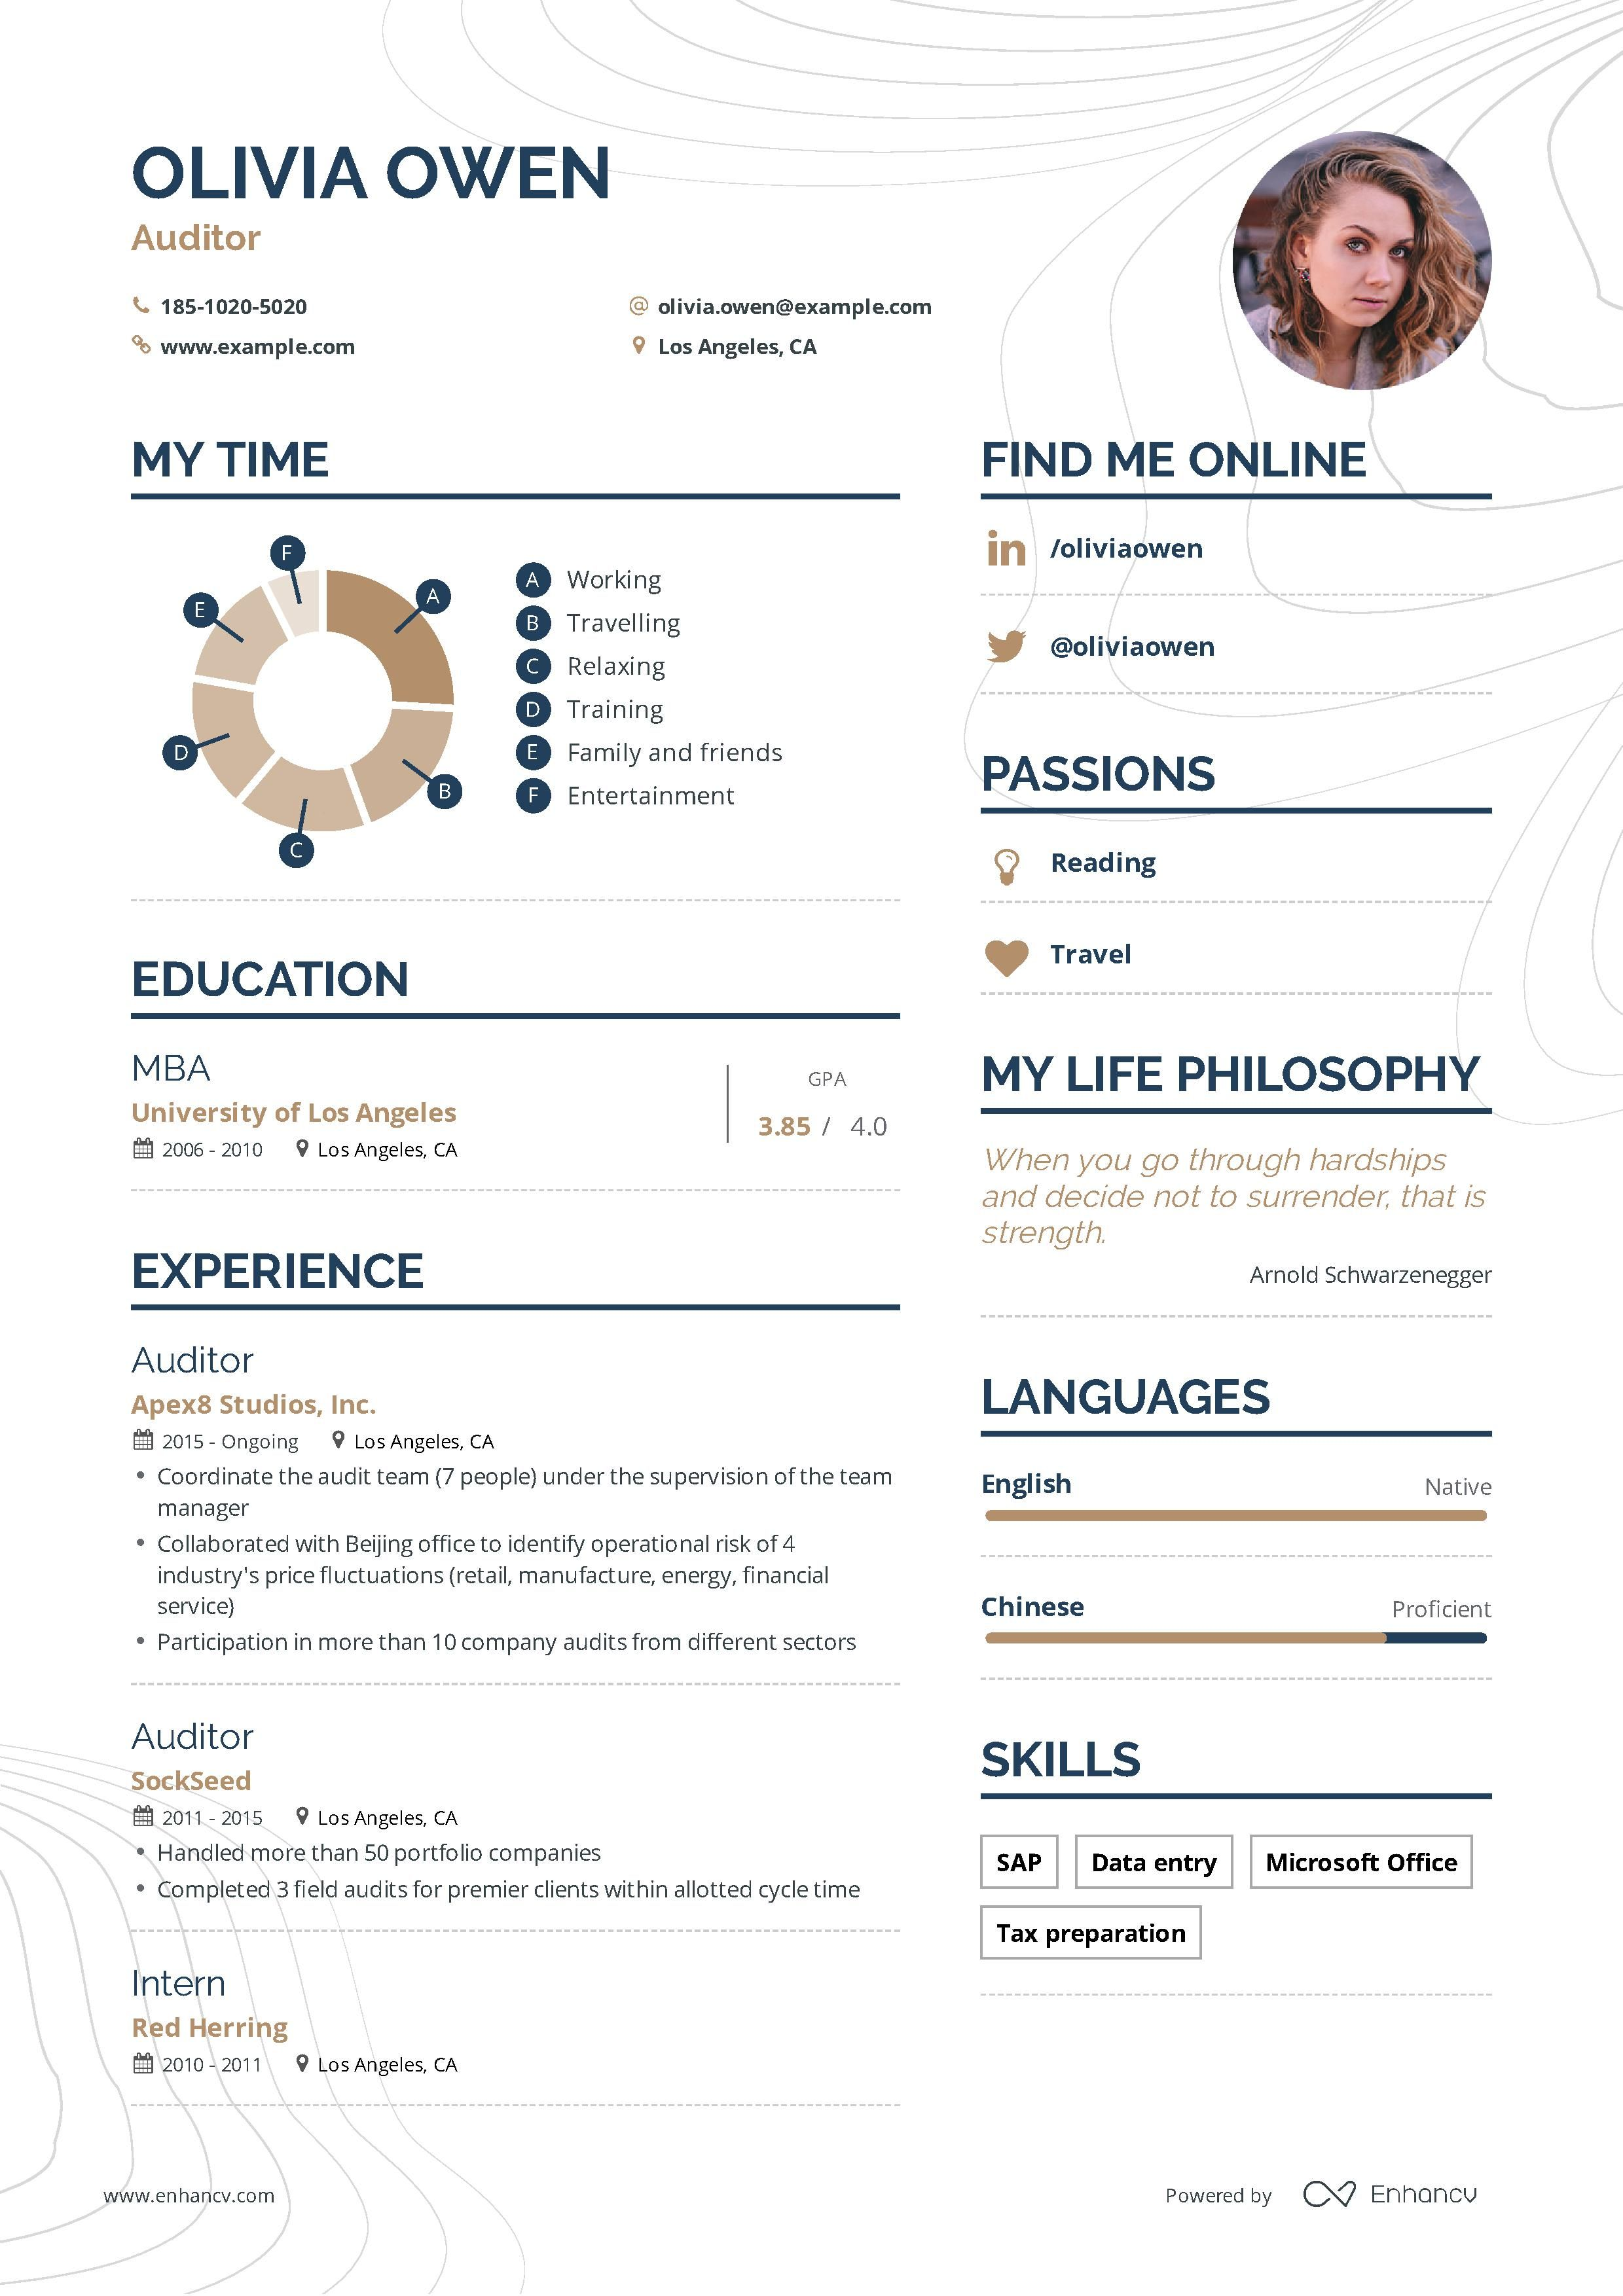 The ultimate 2019 guide for Auditor resume examples. 200